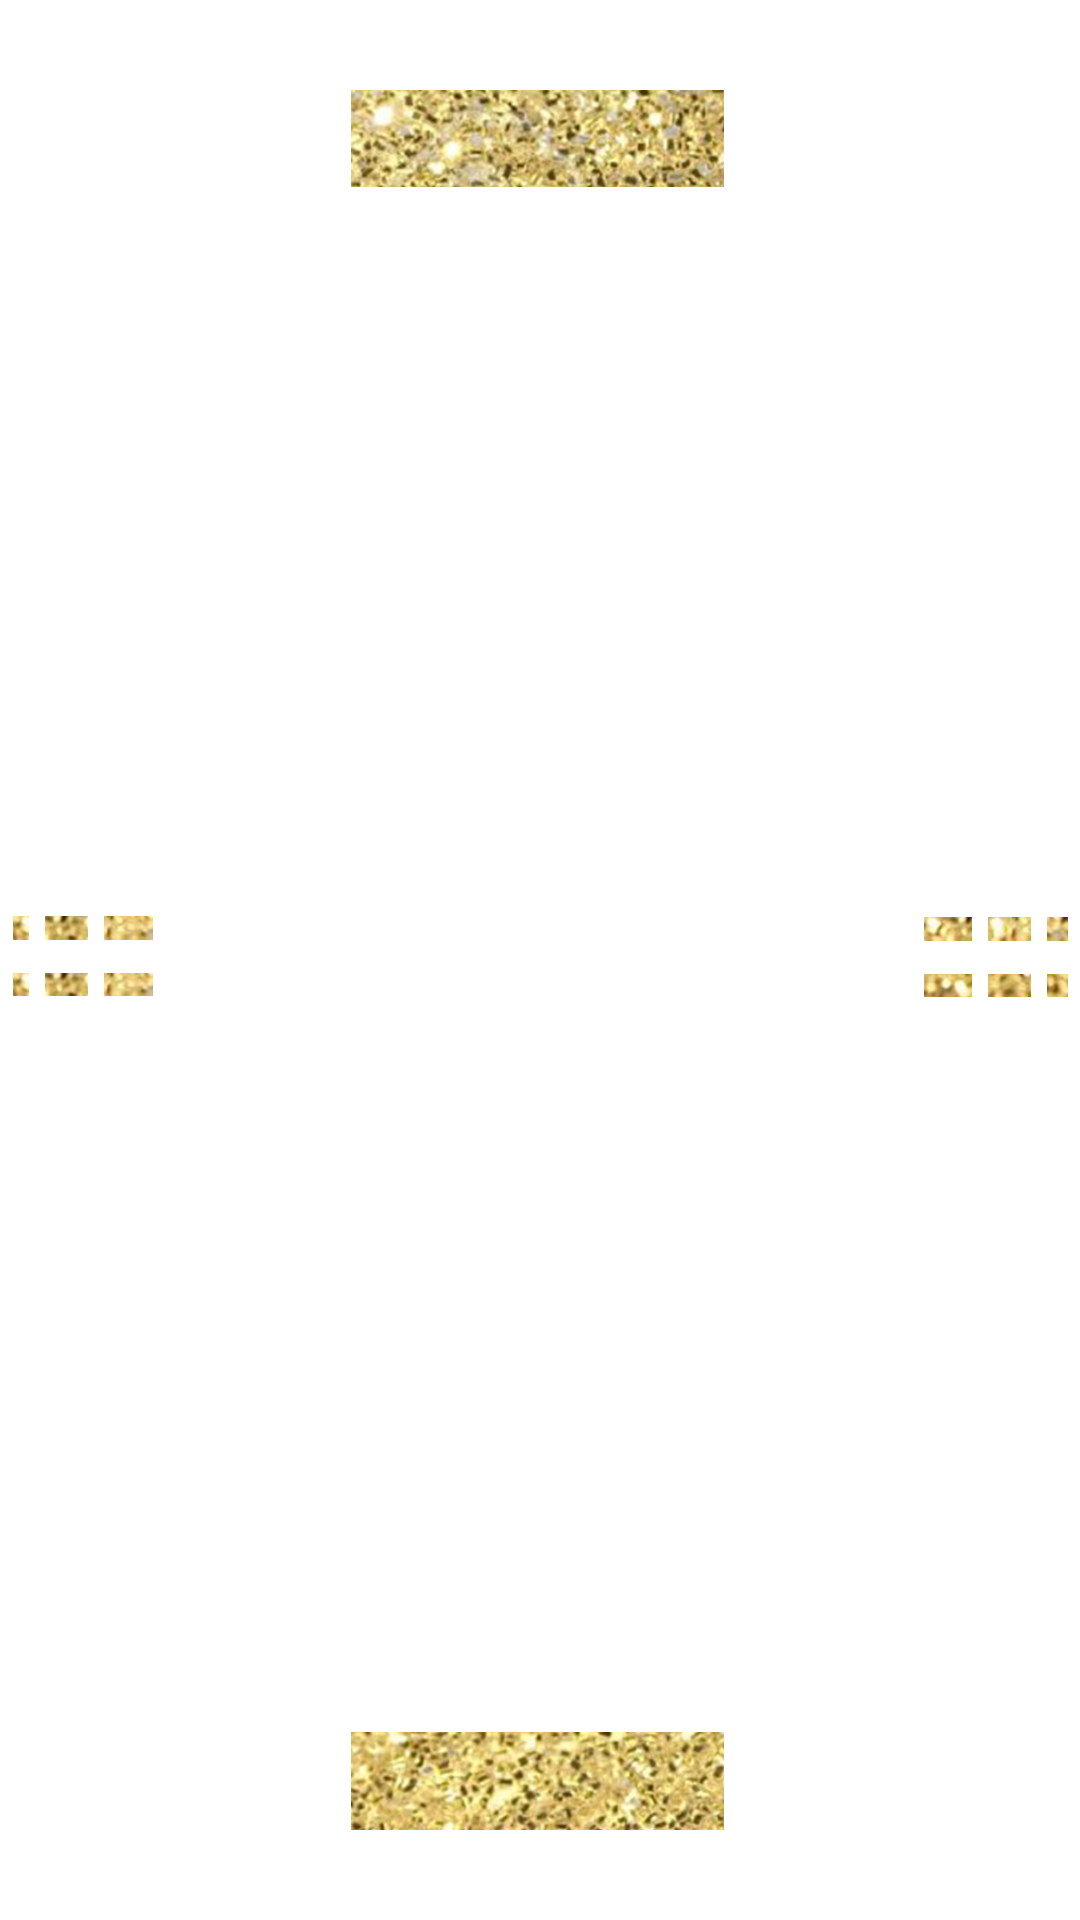 for free download. Art deco frame png